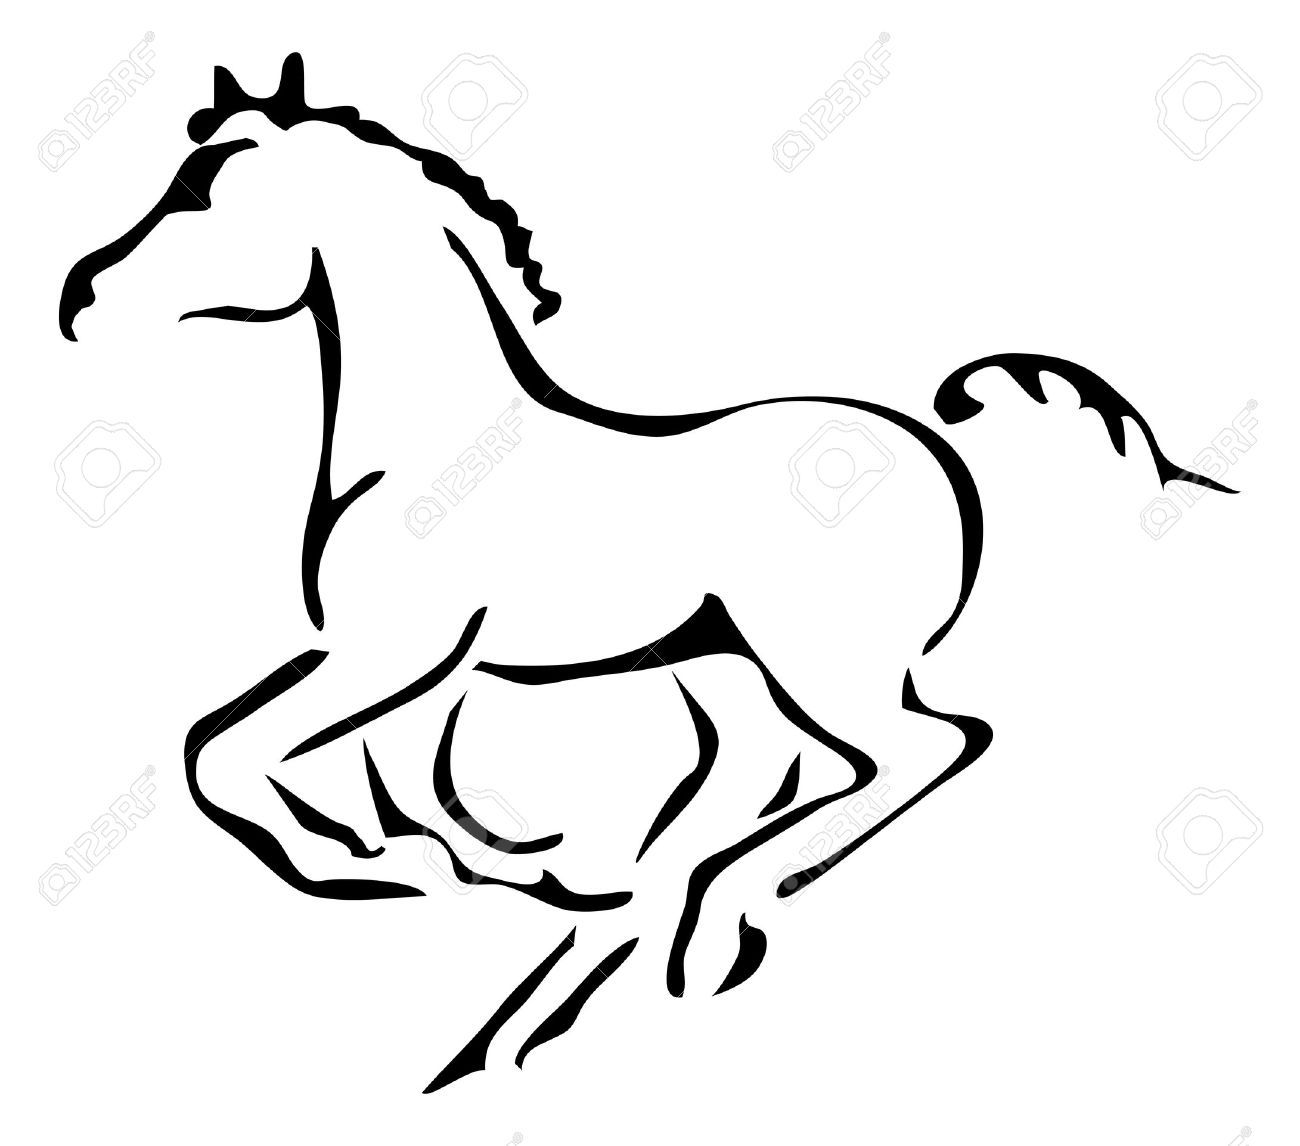 25+ Foal Clipart Black And White